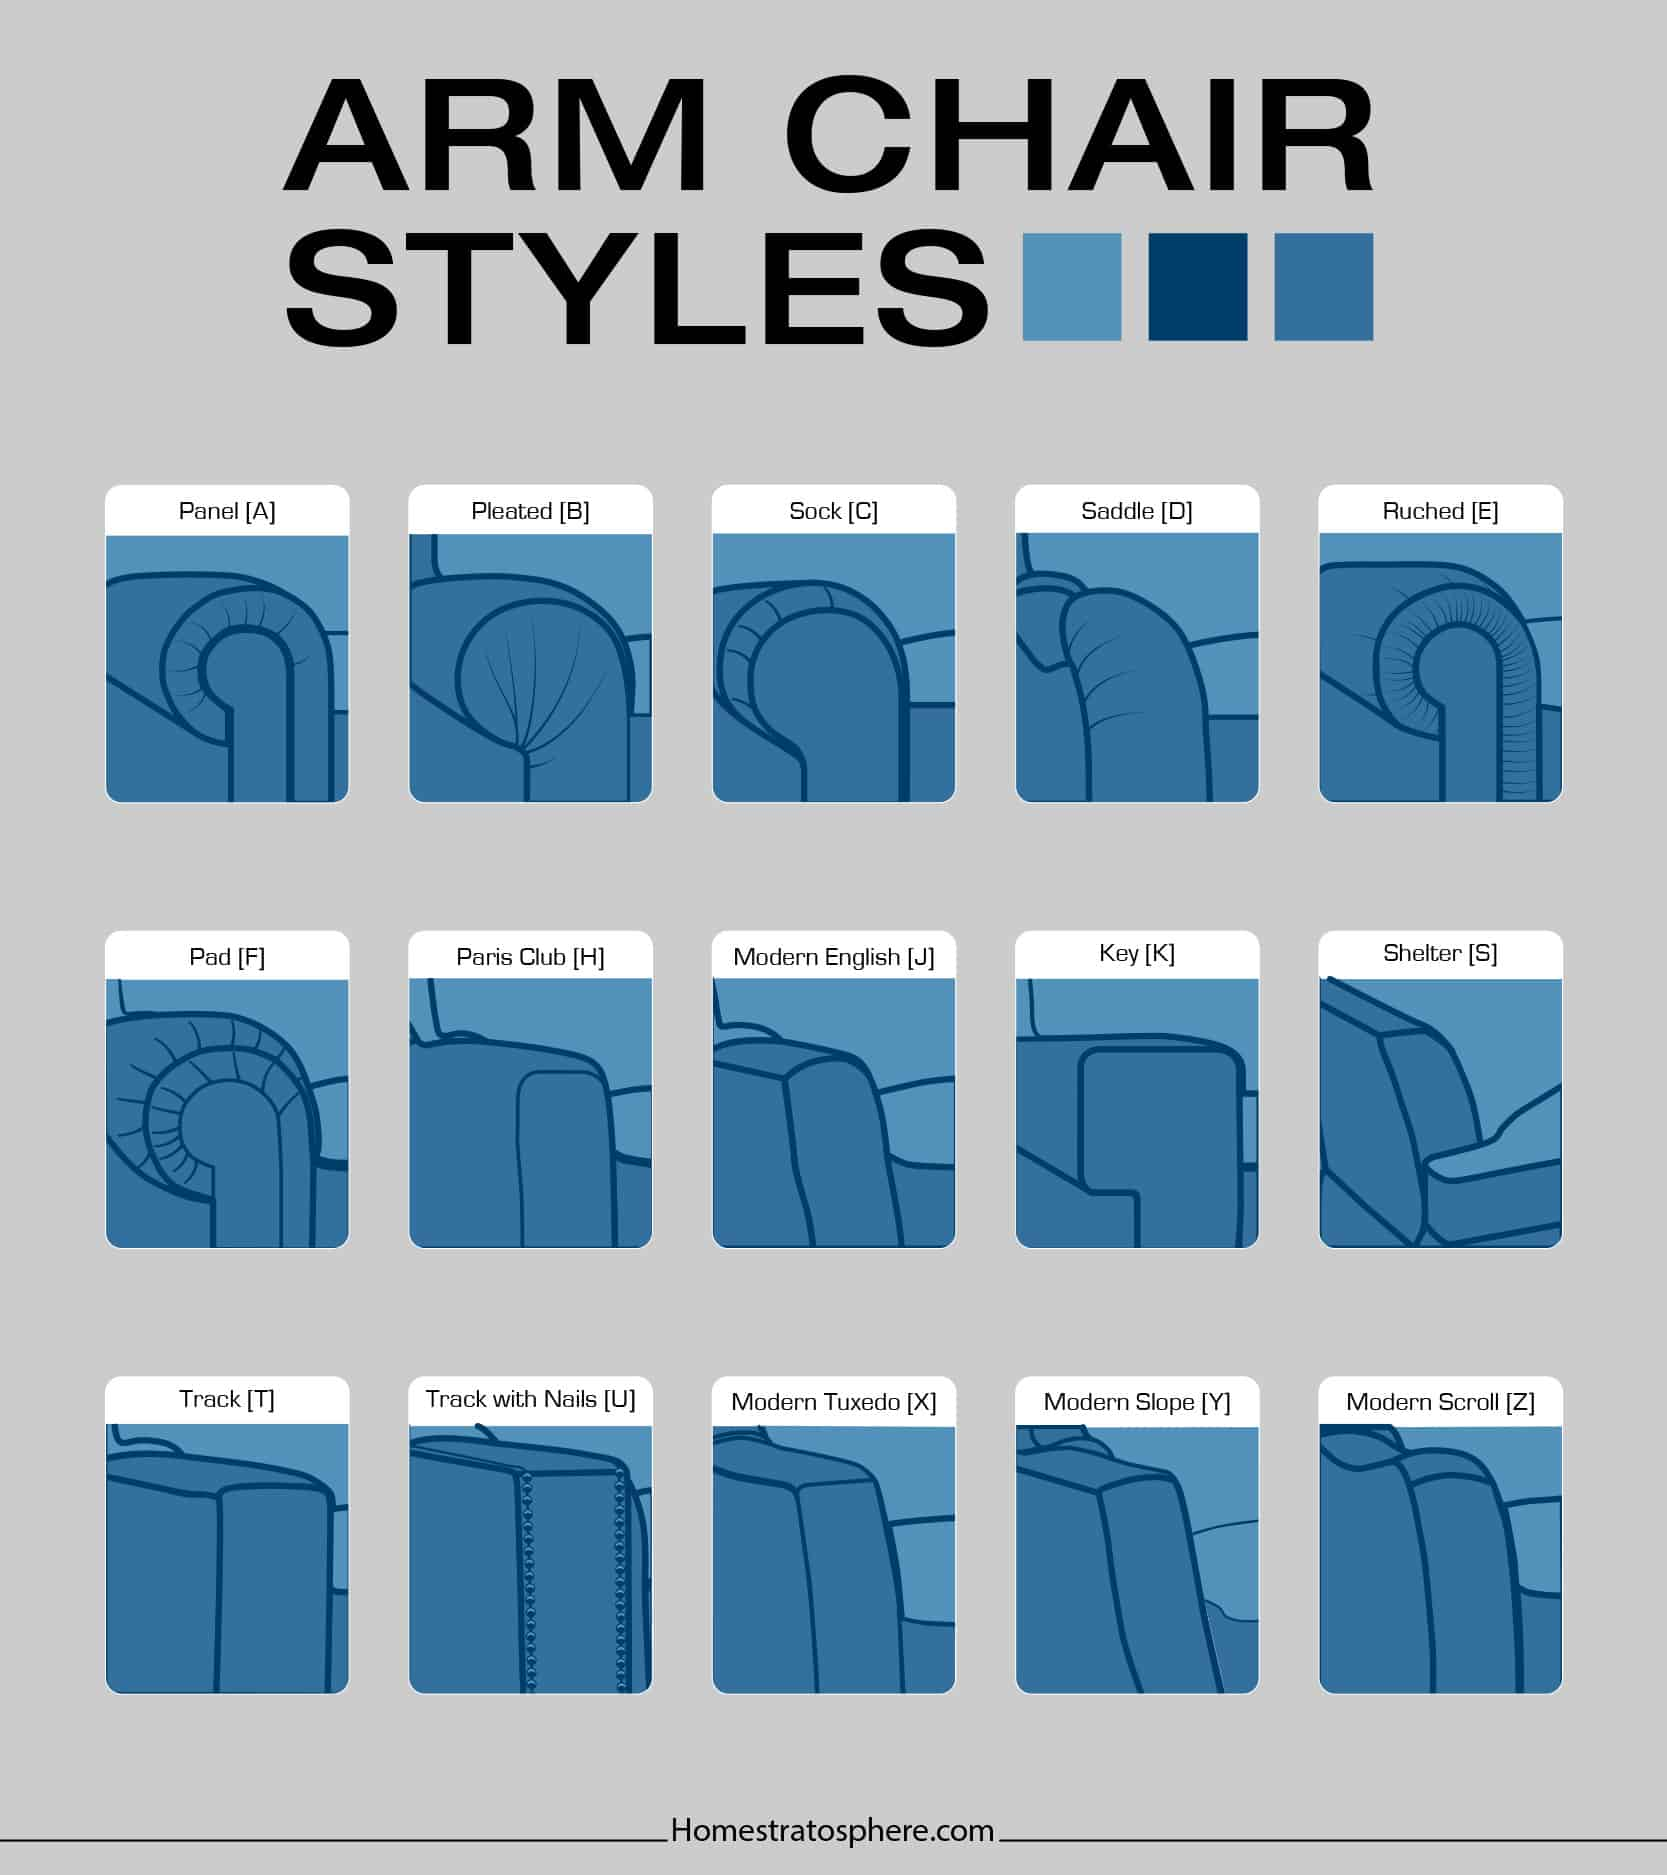 Sofa arm styles illustrated infographic